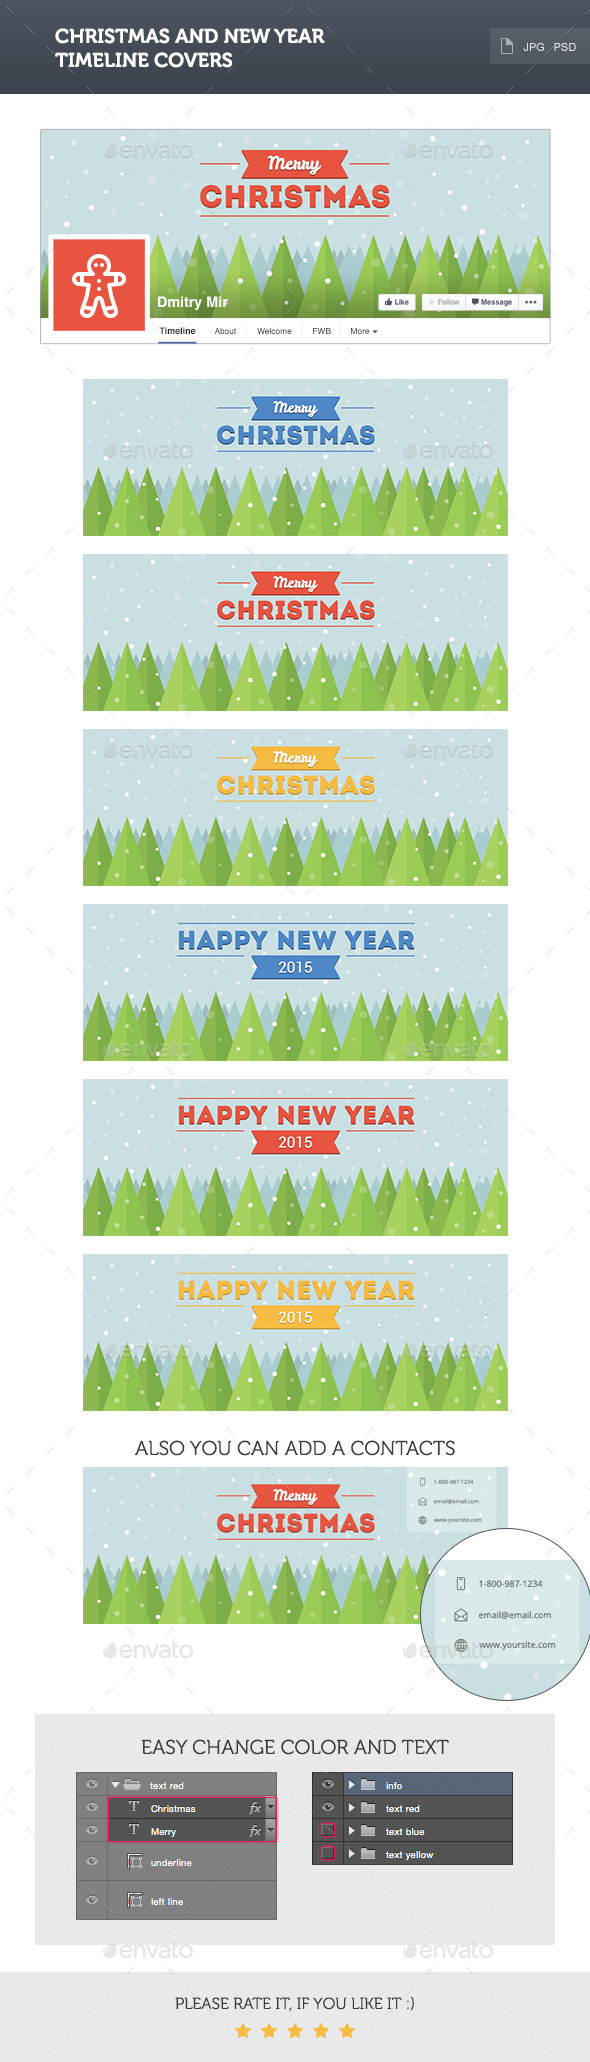 GraphicRiver Christmas Timeline Covers 9479087